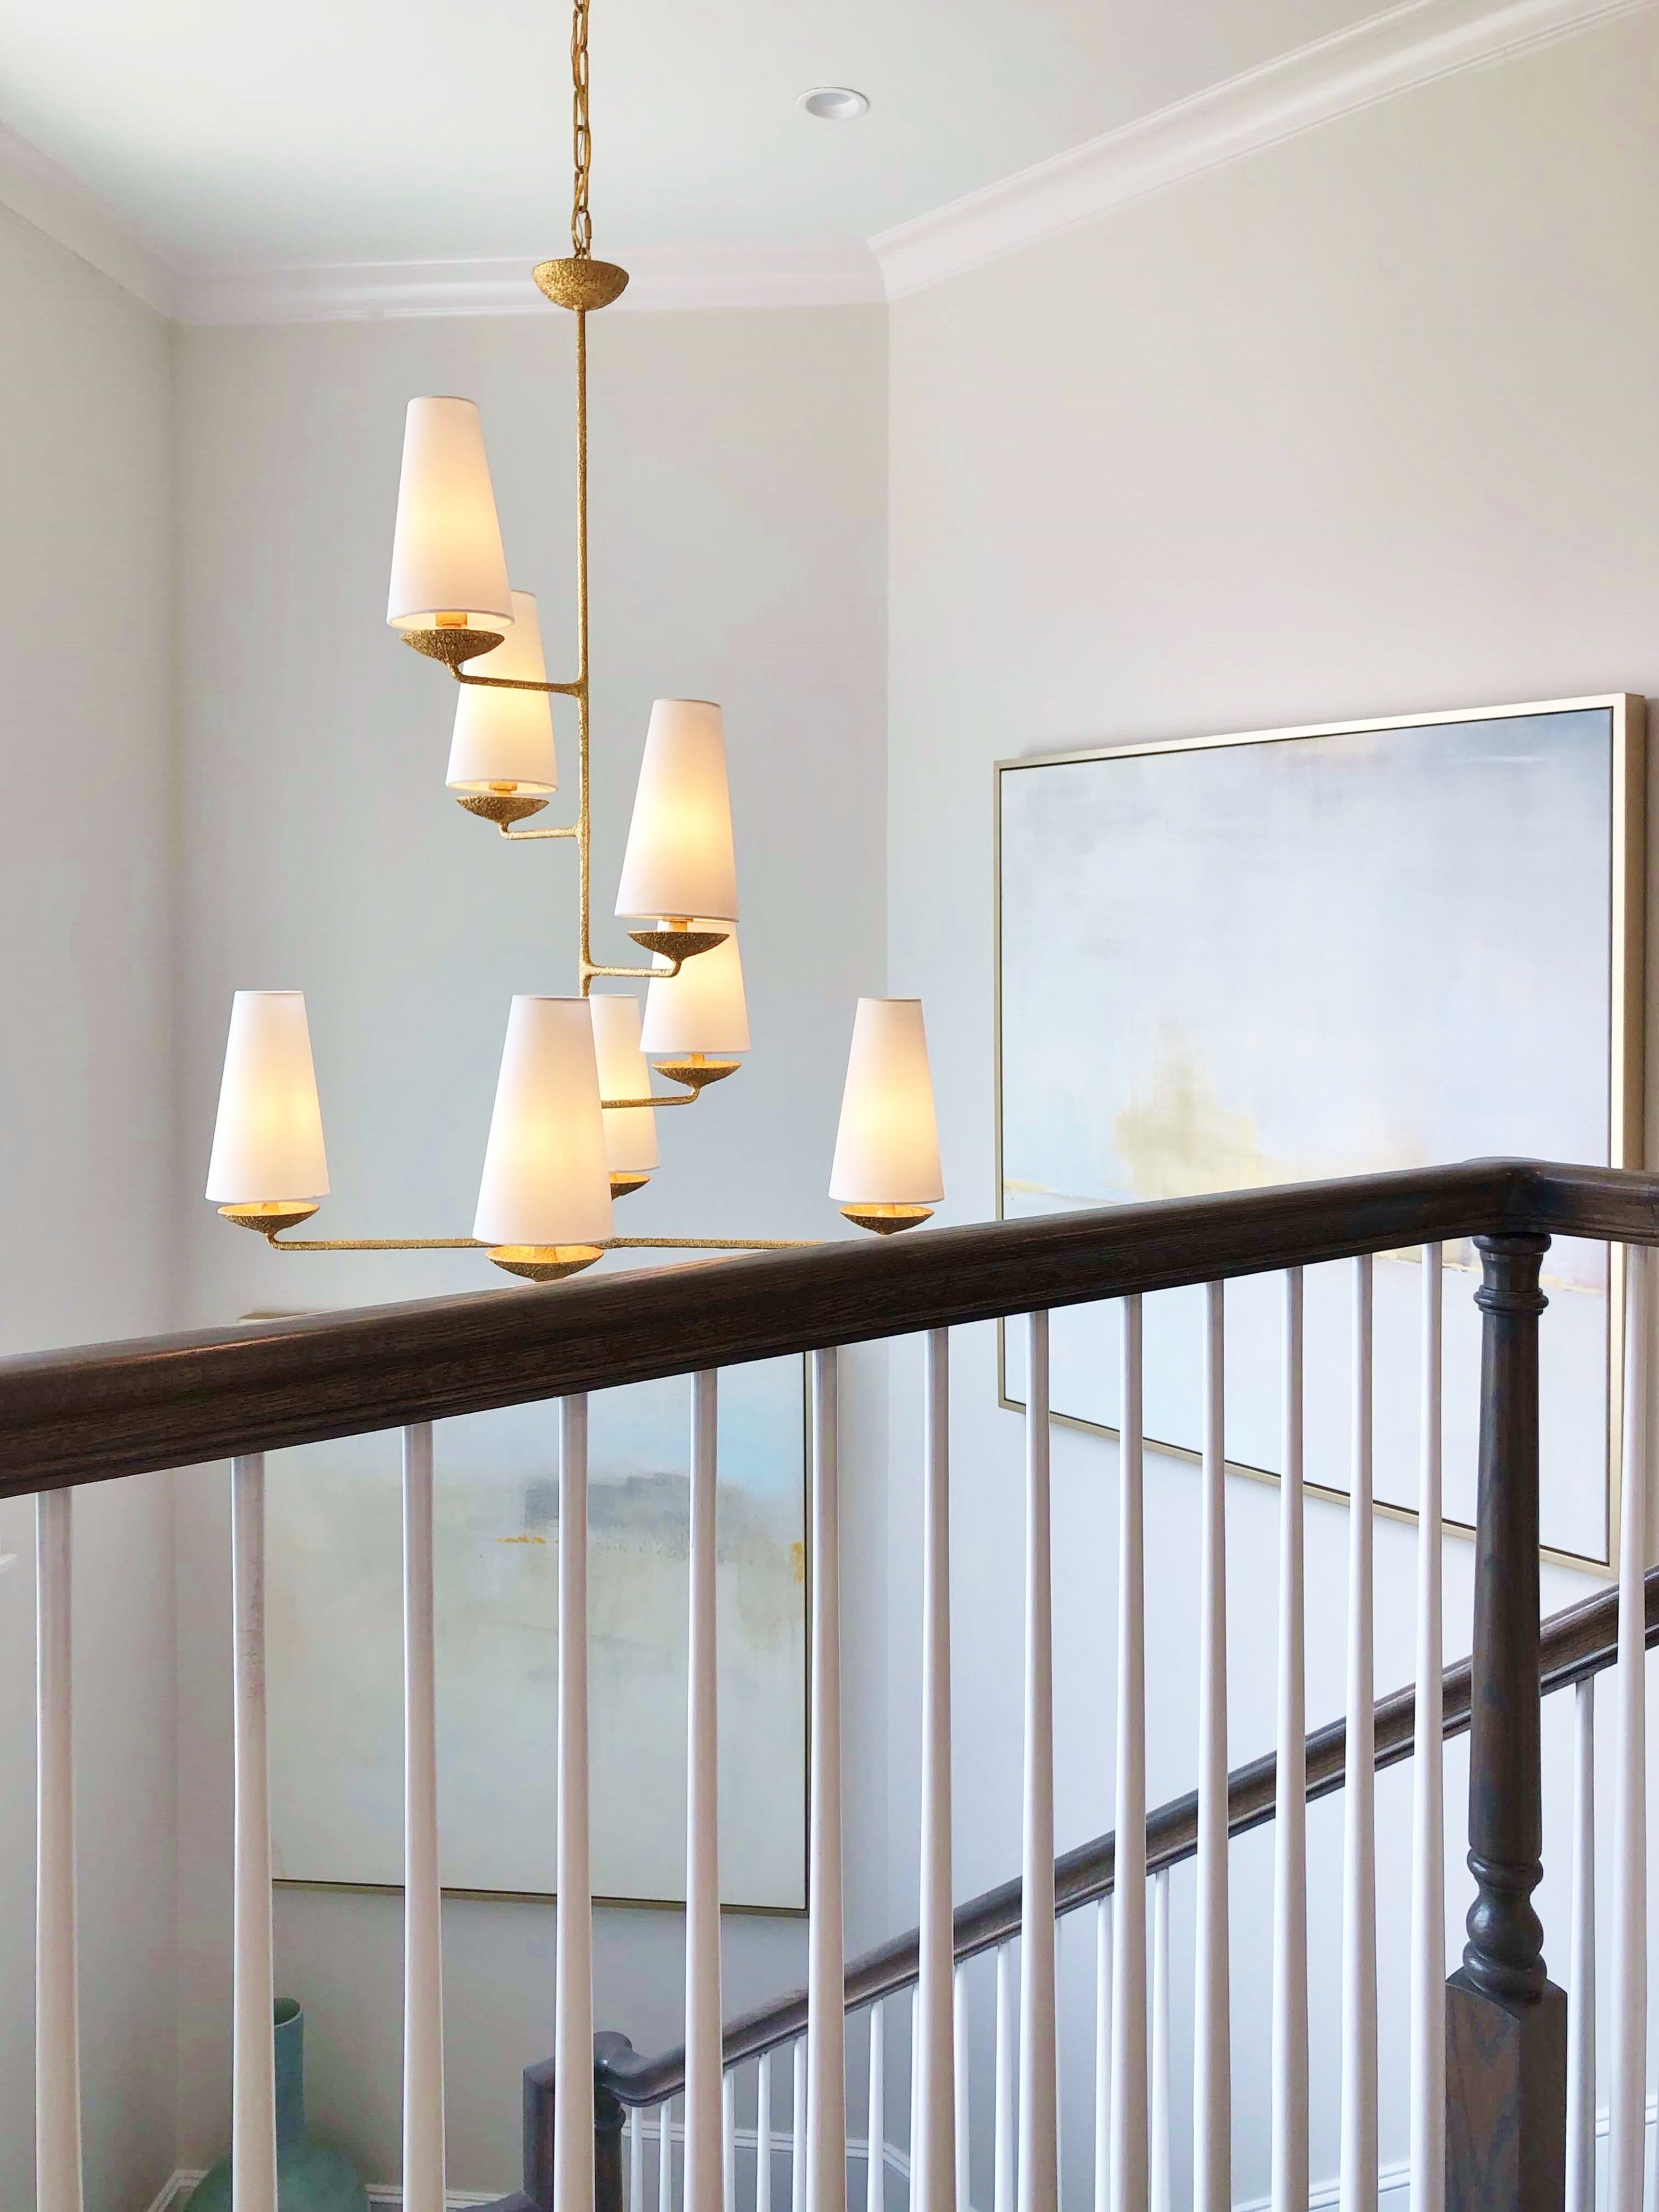 All decorative lighting was provided by Circa Lighting for the ASID Showhouse, Houston. #chandelier #stair